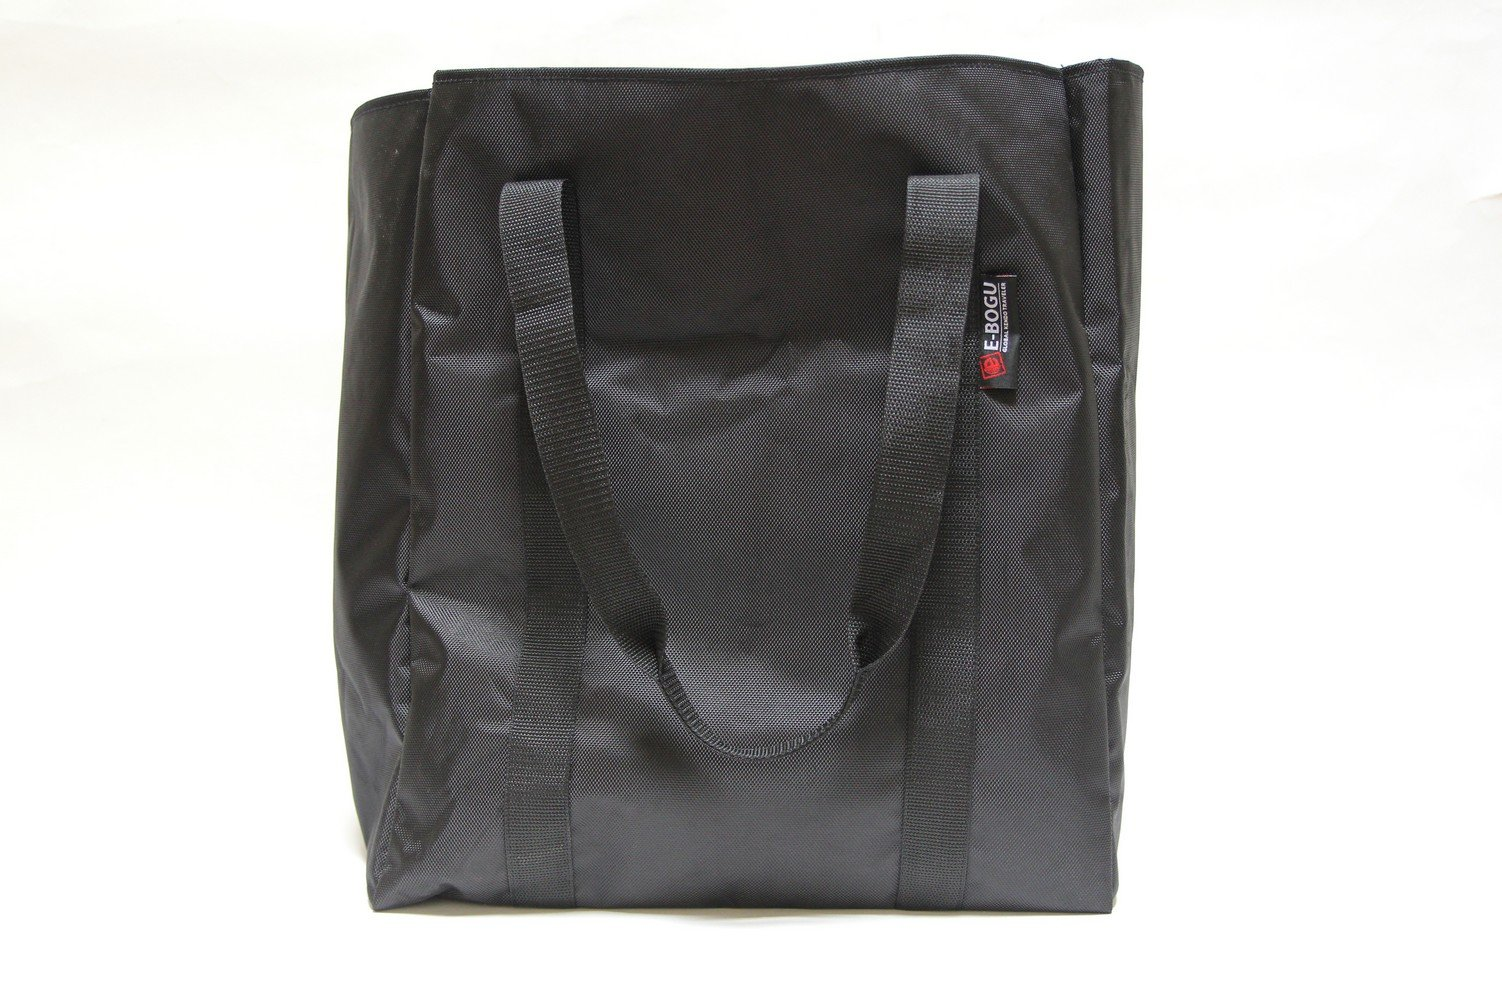 e-bogu Kendo Deluxe Tote Bogu Bag [GLOBAL KENDO TRAVELER]